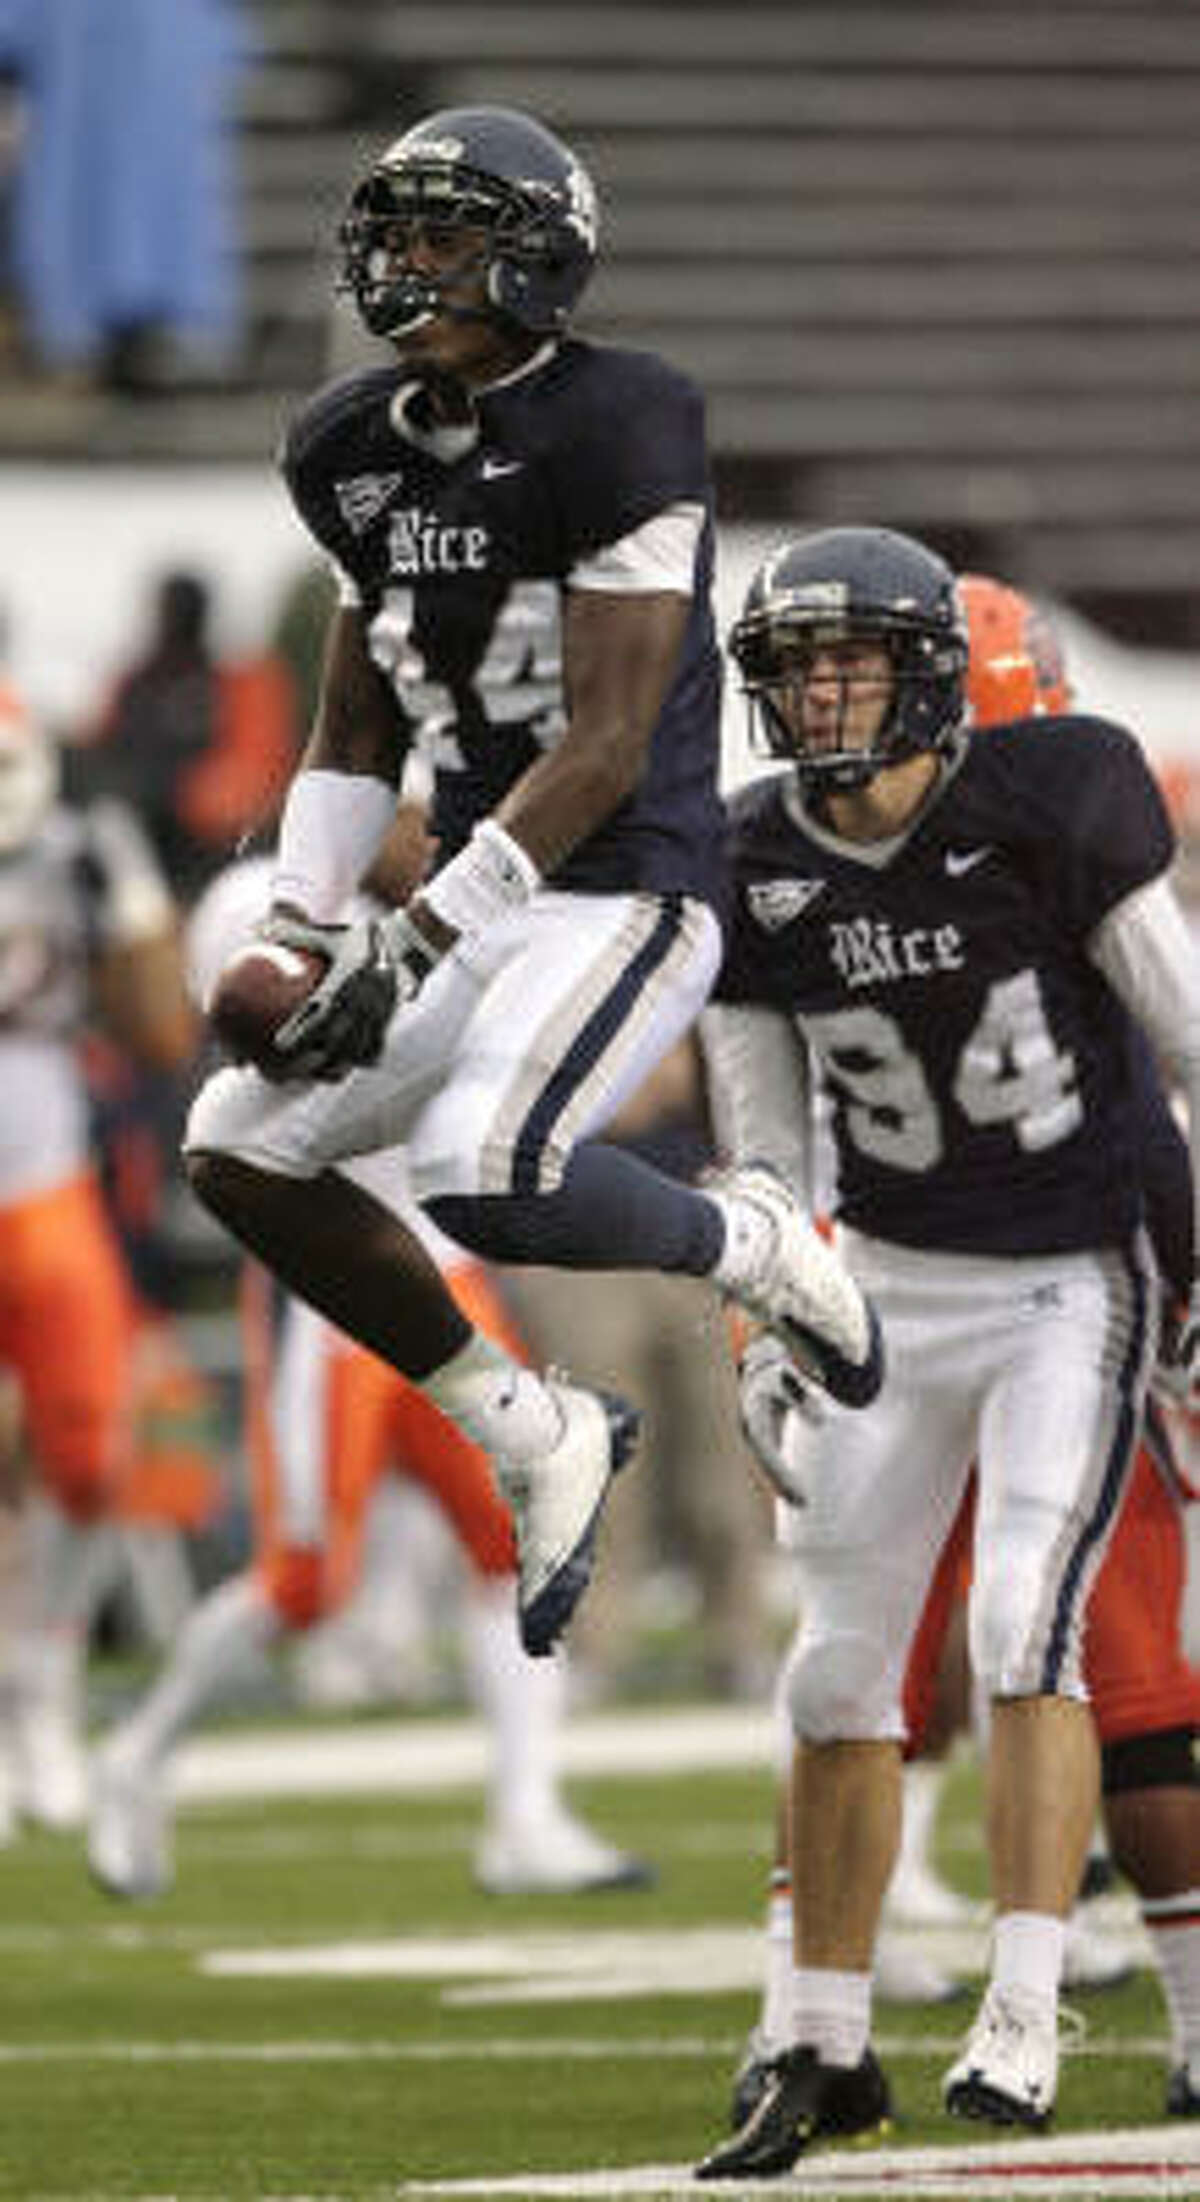 Rice defensive back Chris Jones celebrates after picking up a fumble on a kickoff return during the fourth quarter of Saturday's game against Texas-El Paso.